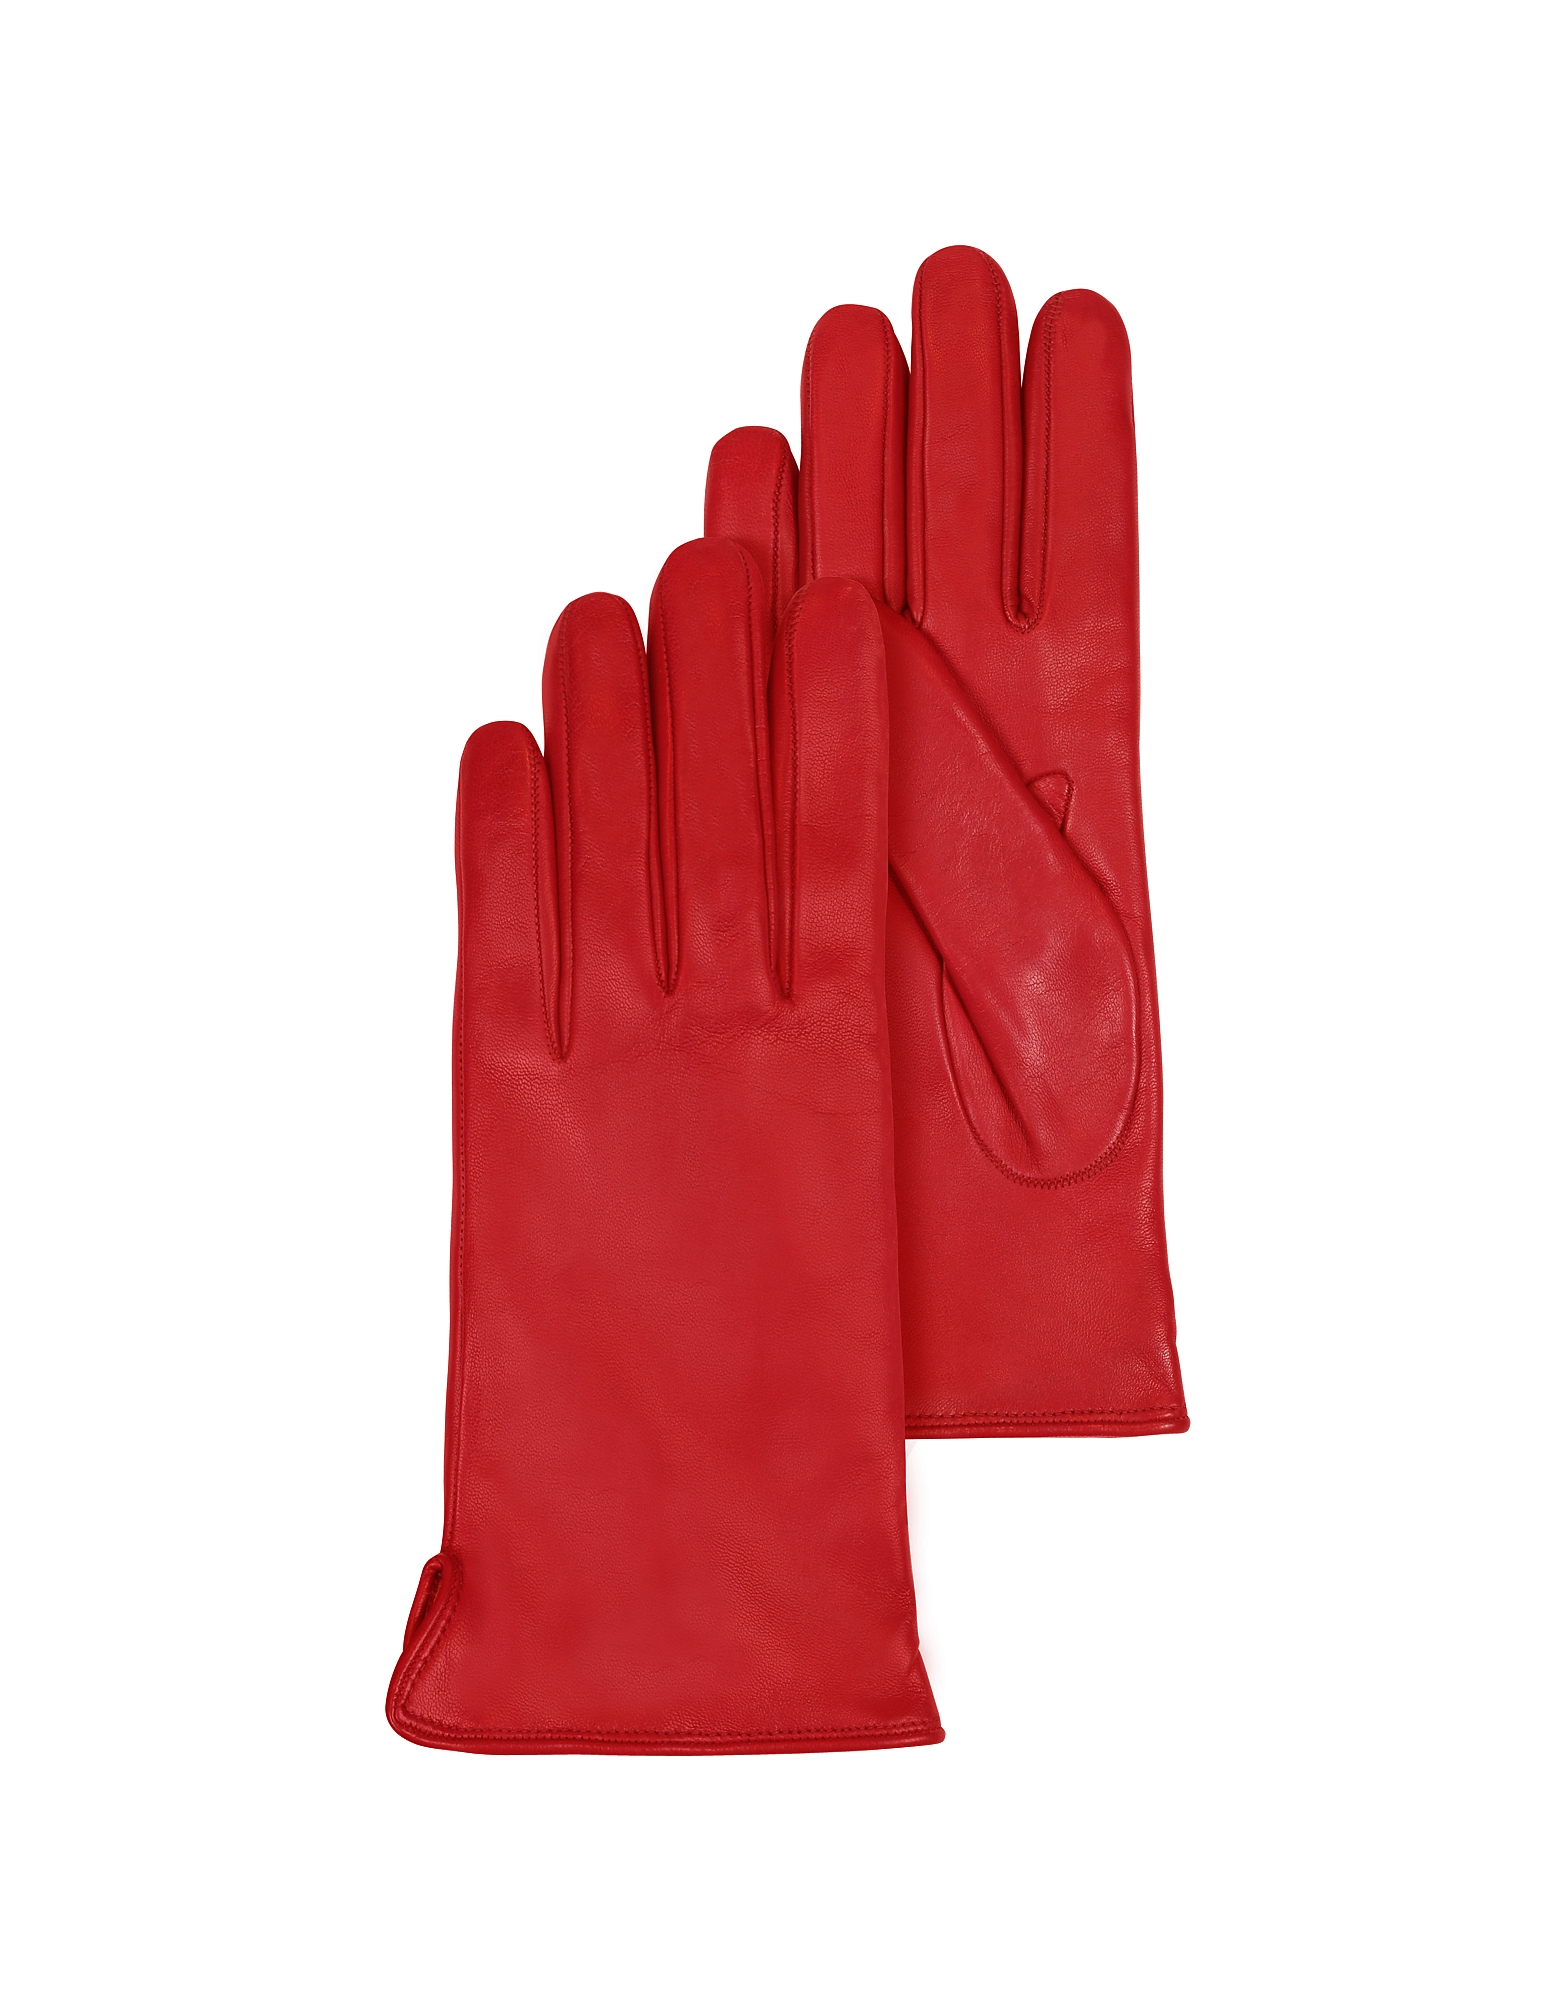 Forzieri Women's Gloves, Red Leather Women's Gloves w/Cashmere Lining